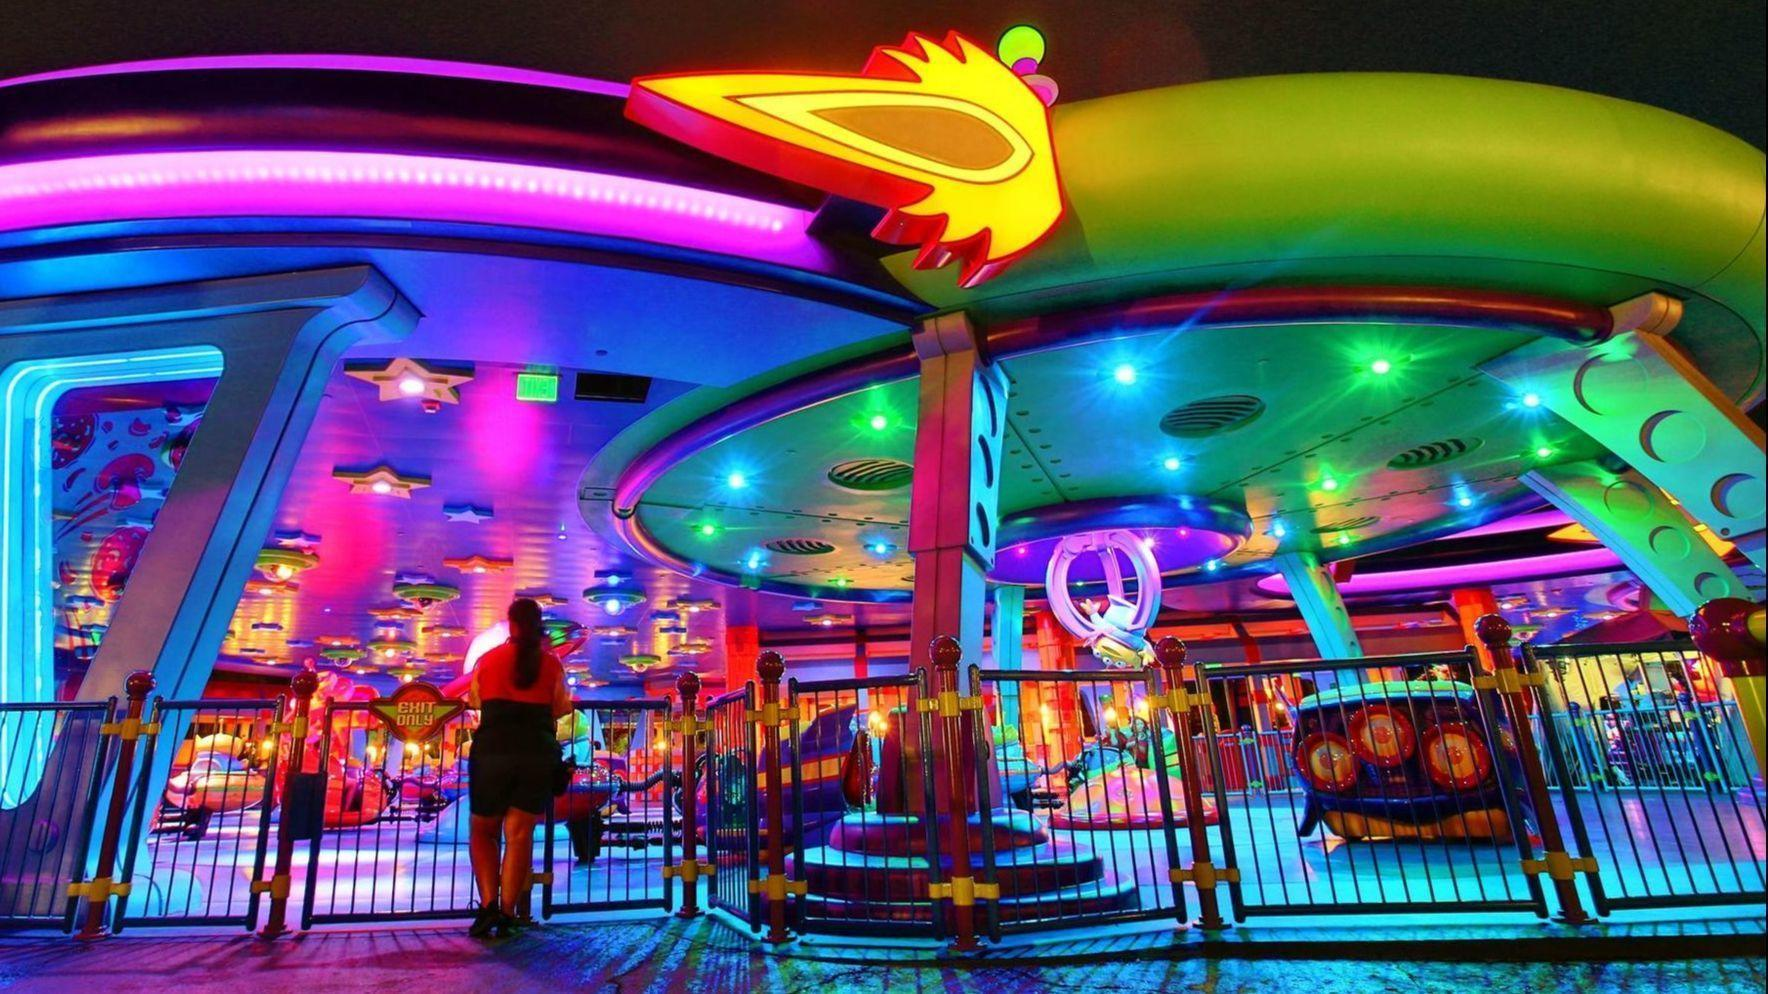 Disney World Holiday Plans Include Toy Story Land Up Show